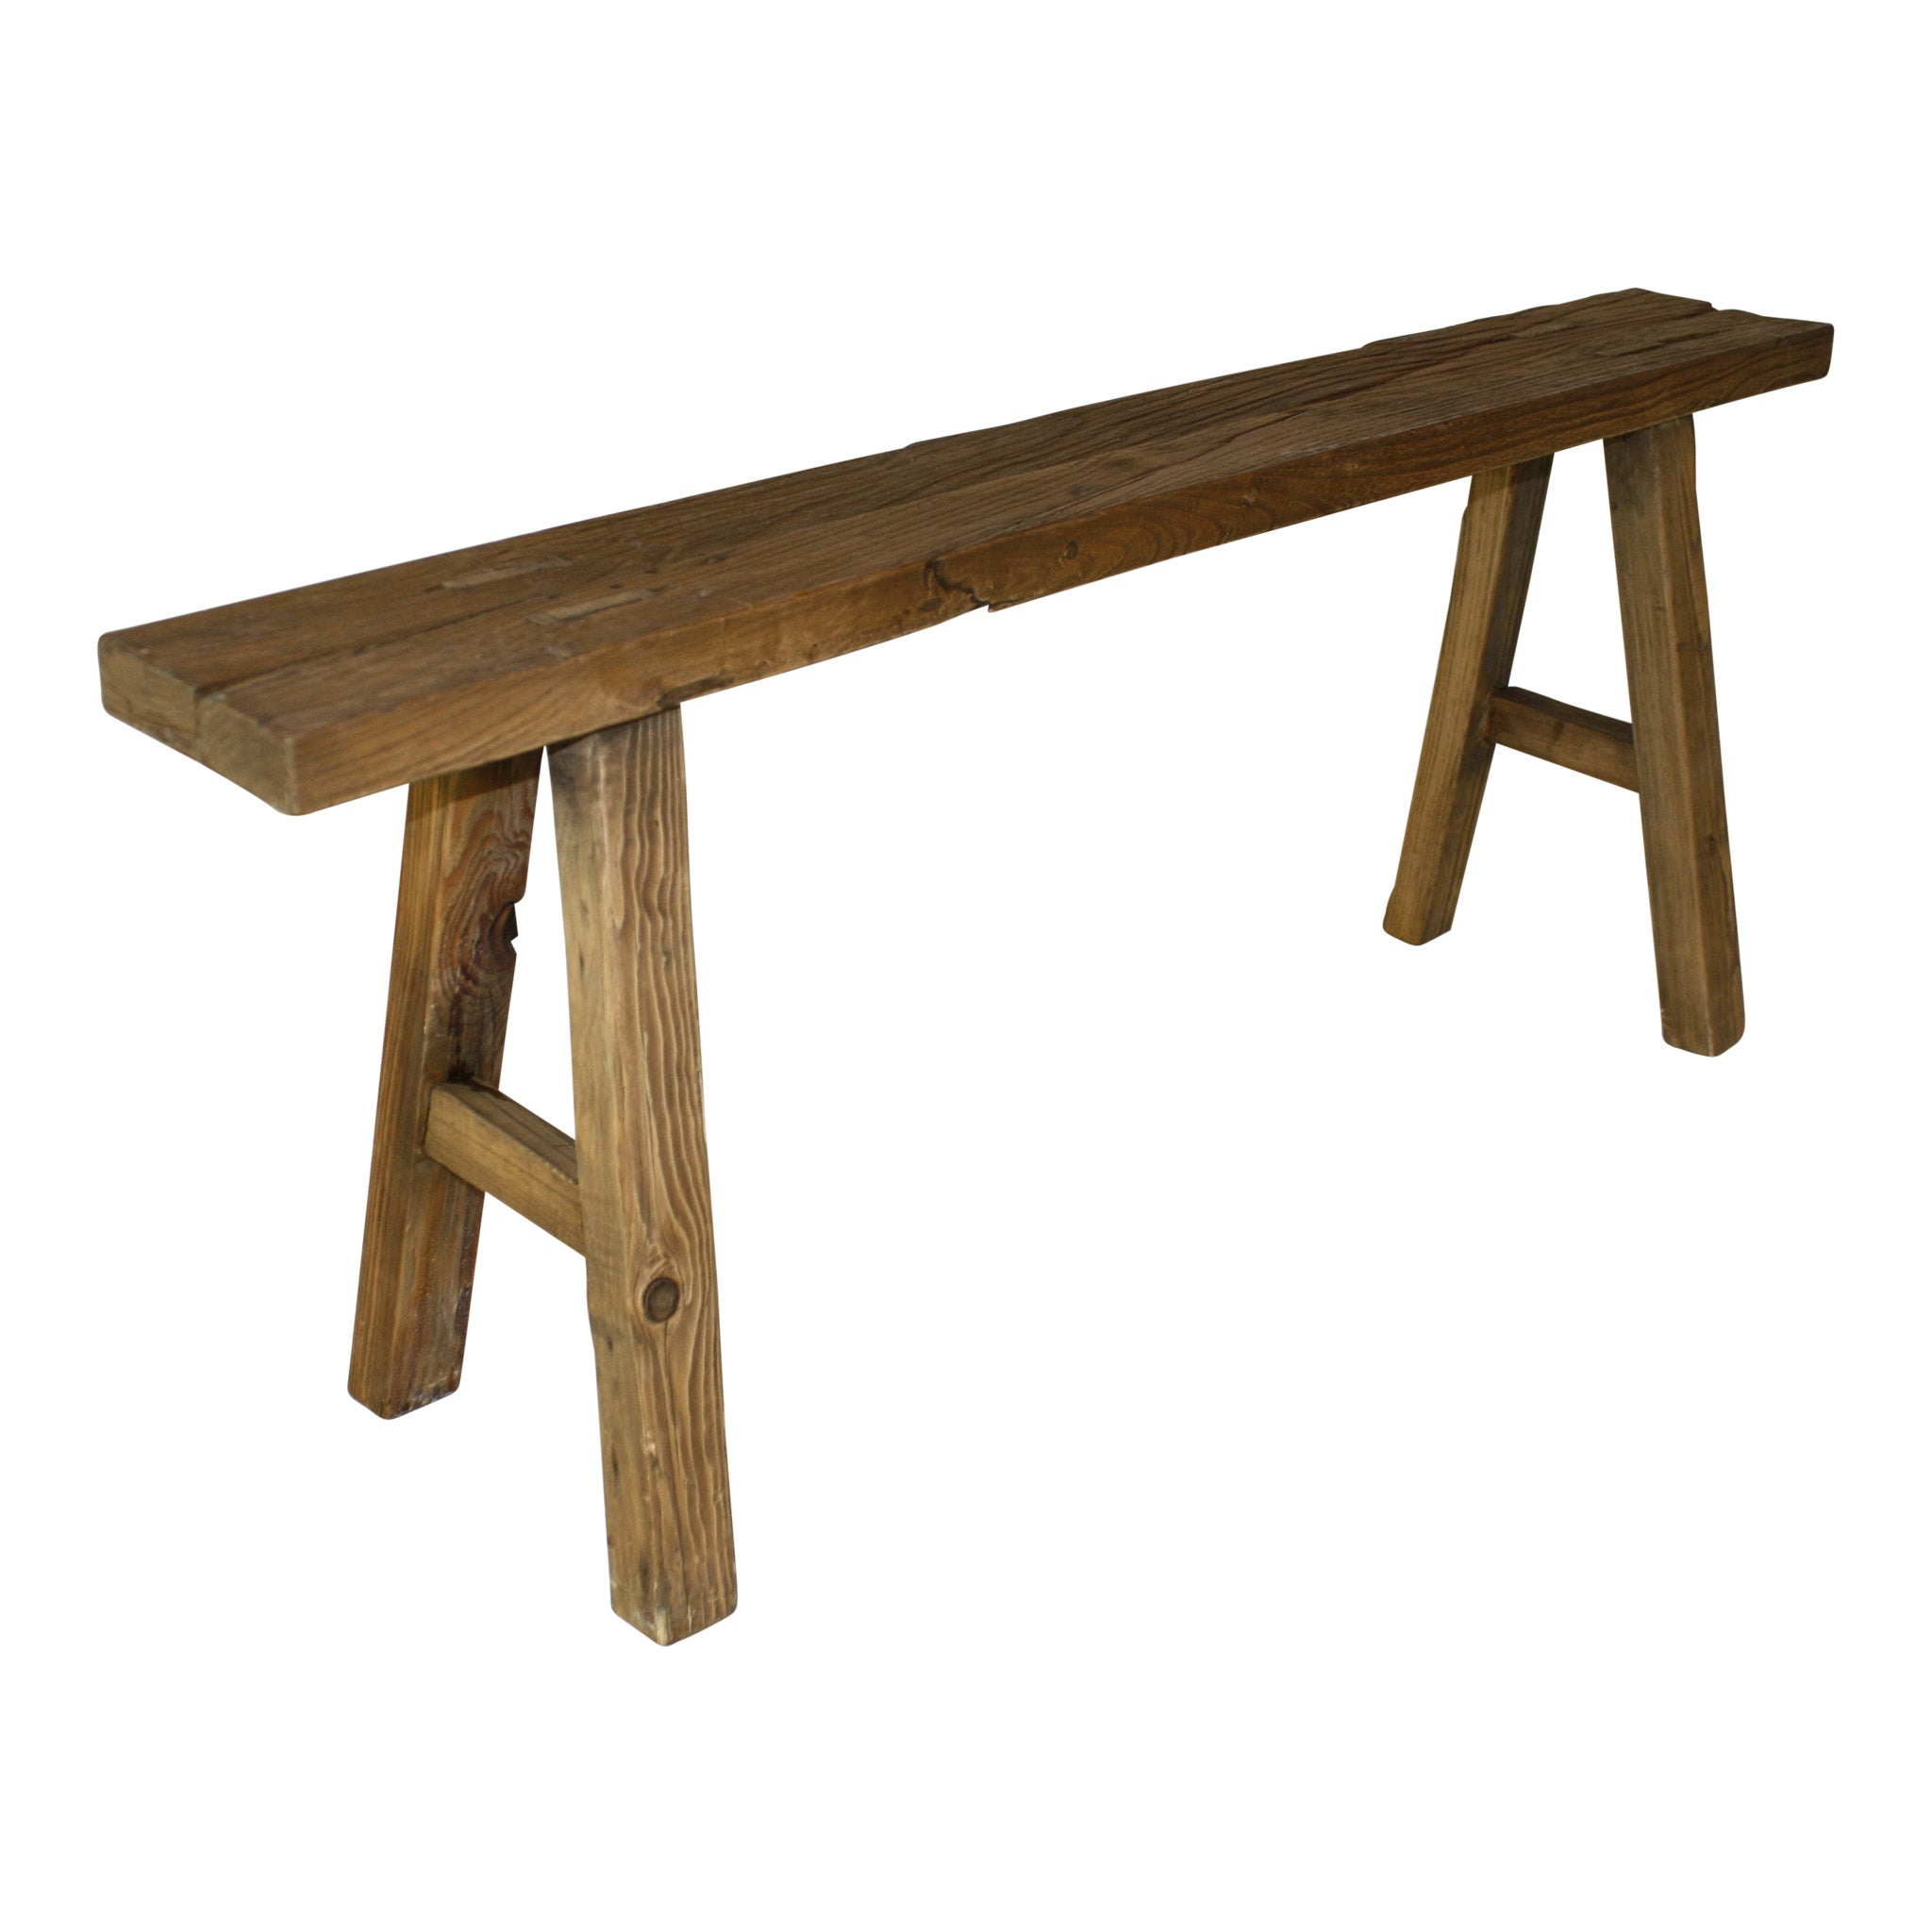 Small mortise and tenon joint oak farm bench ski country antiques home